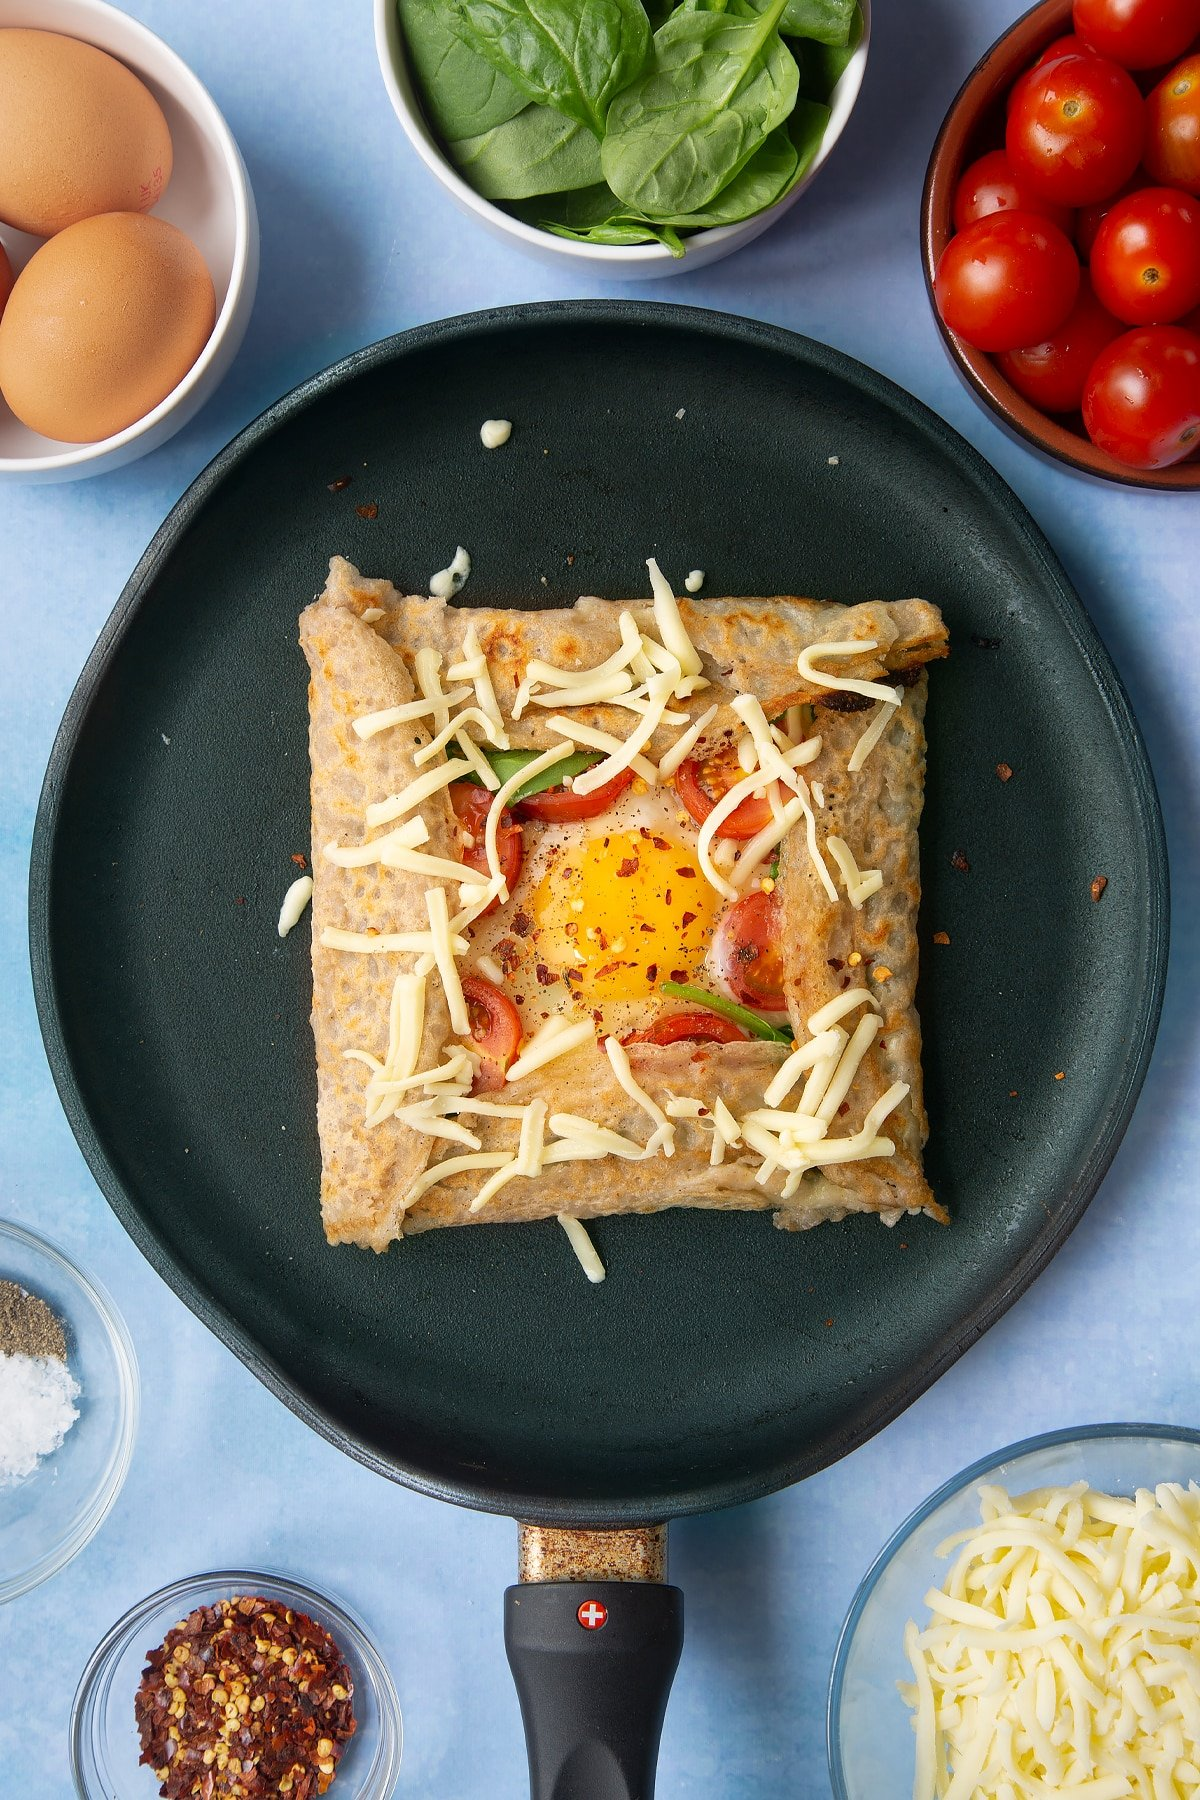 Folded buckwheat galette in a crepe pan, scattered with chilli flakes and grated cheese. Ingredients to make buckwheat galettes surround the pan.